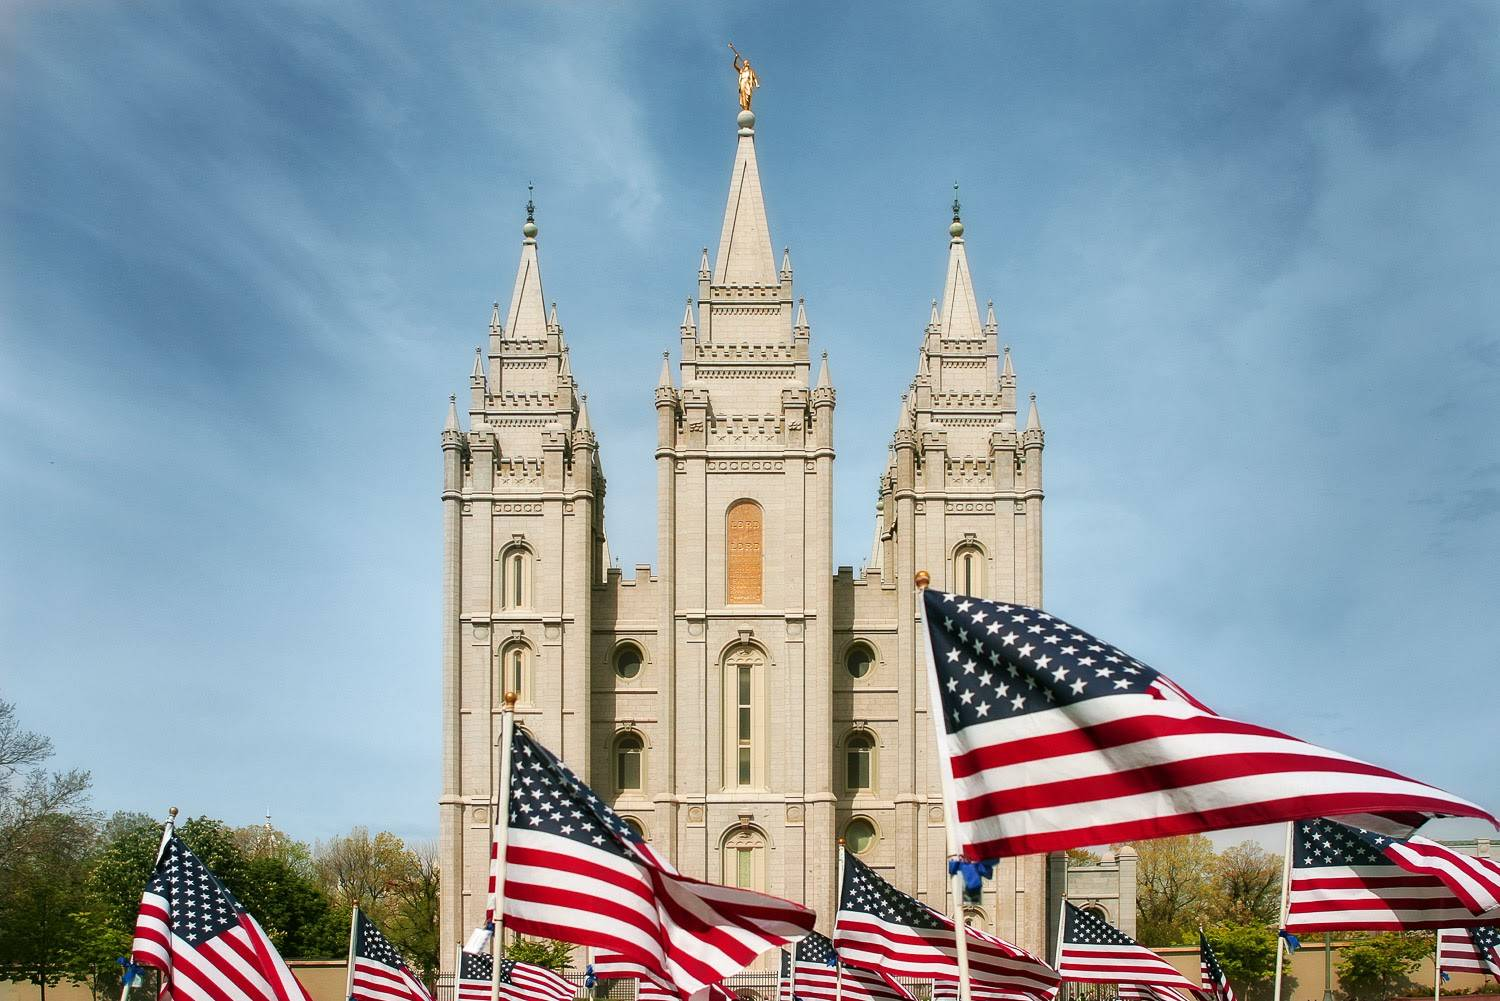 PHoto of hte Salt Lake City Temple with rows of US flags in the forefront.